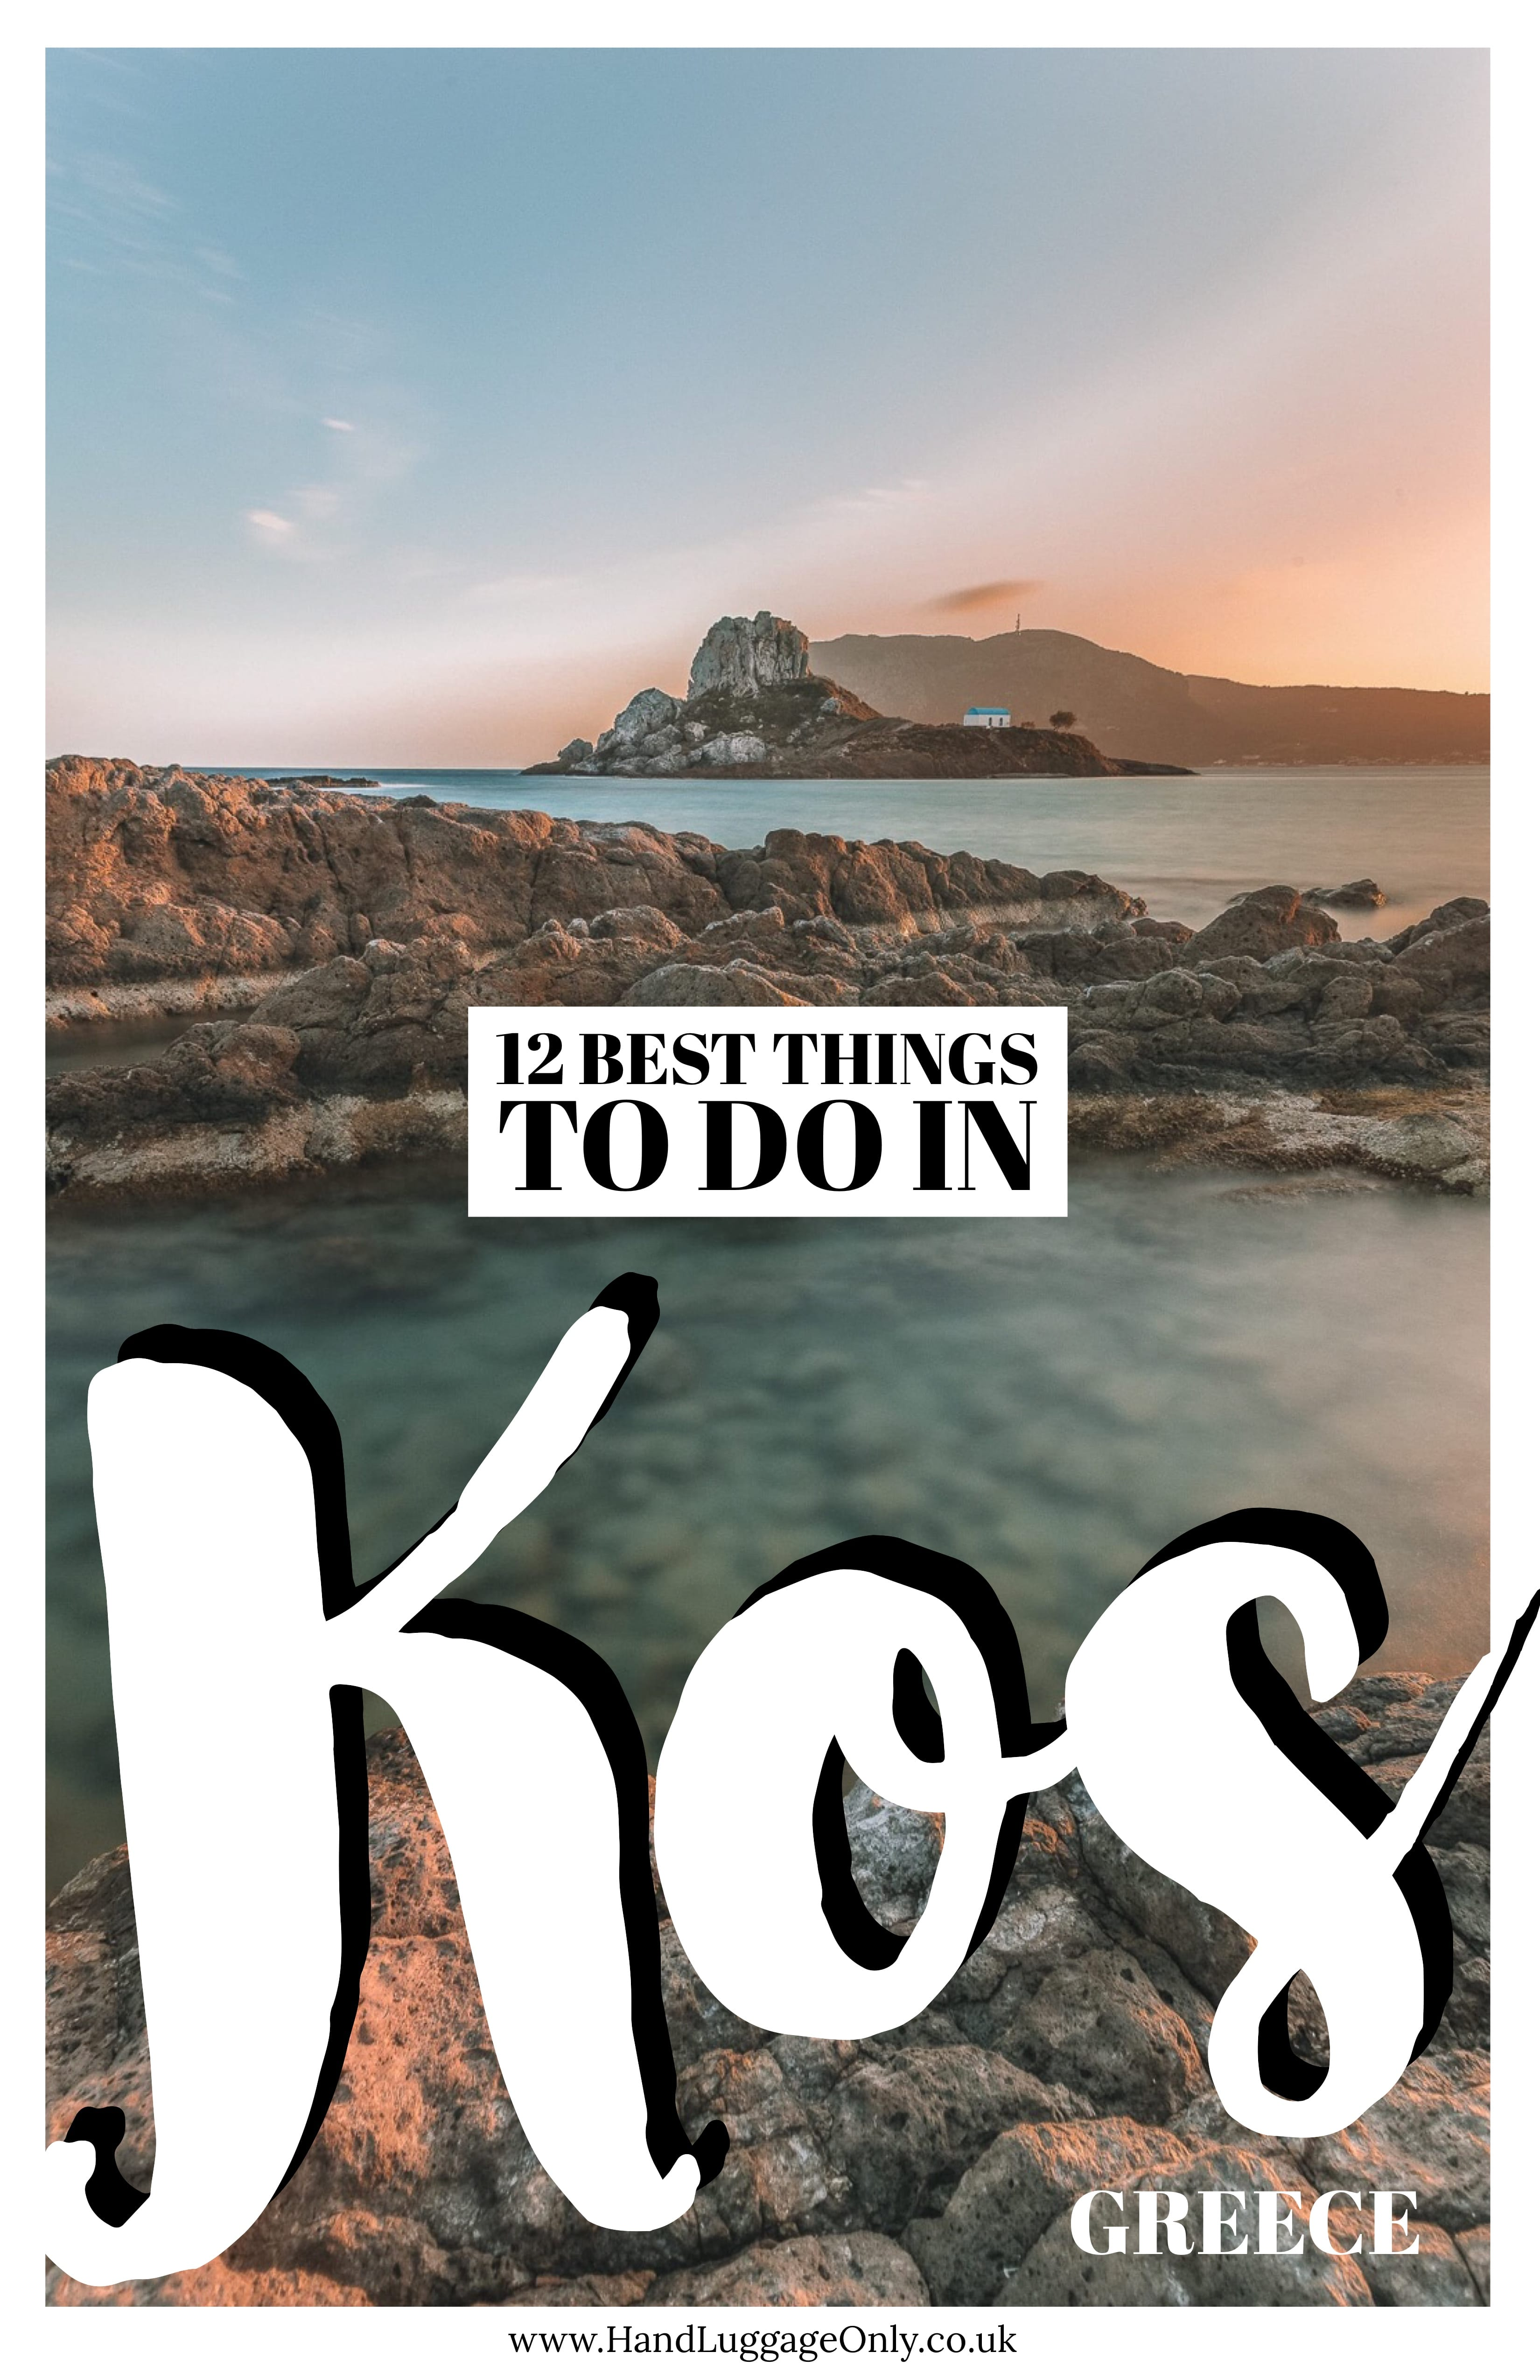 12 Best Things To Do In Kos, Greece (1)